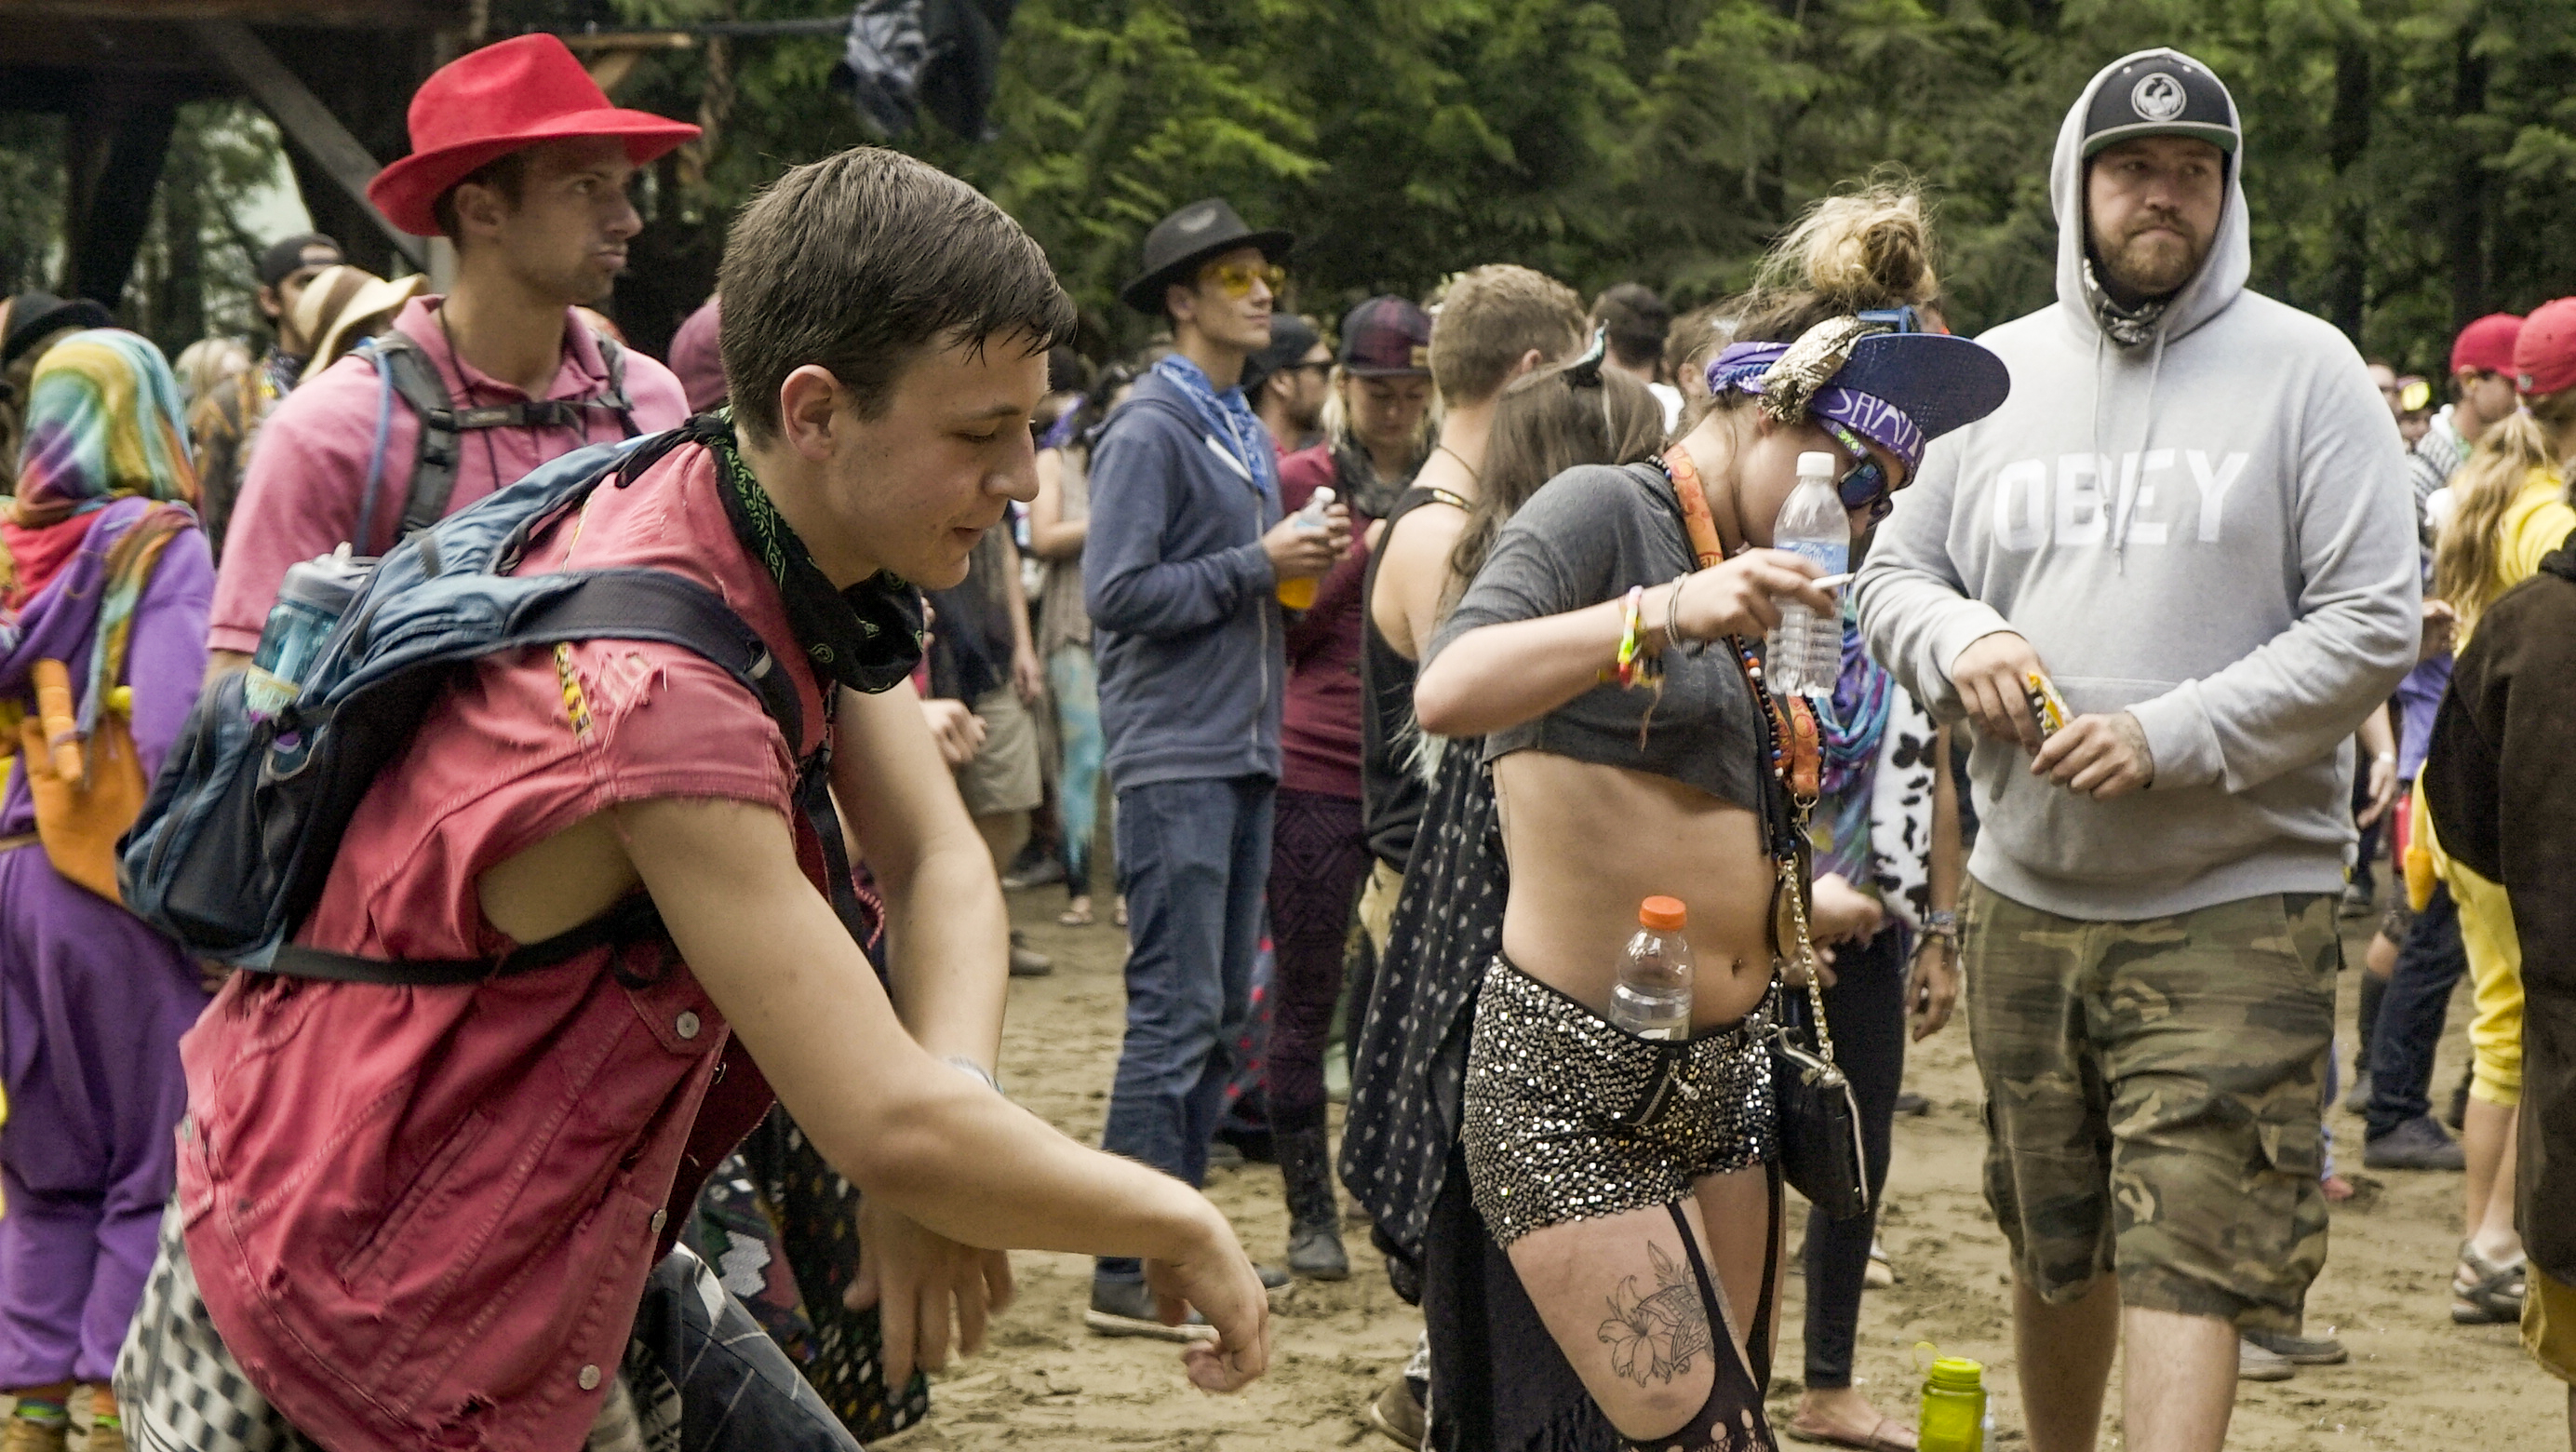 People Do Drugs at Music Festivals: Organizers Need to Stop Ignoring